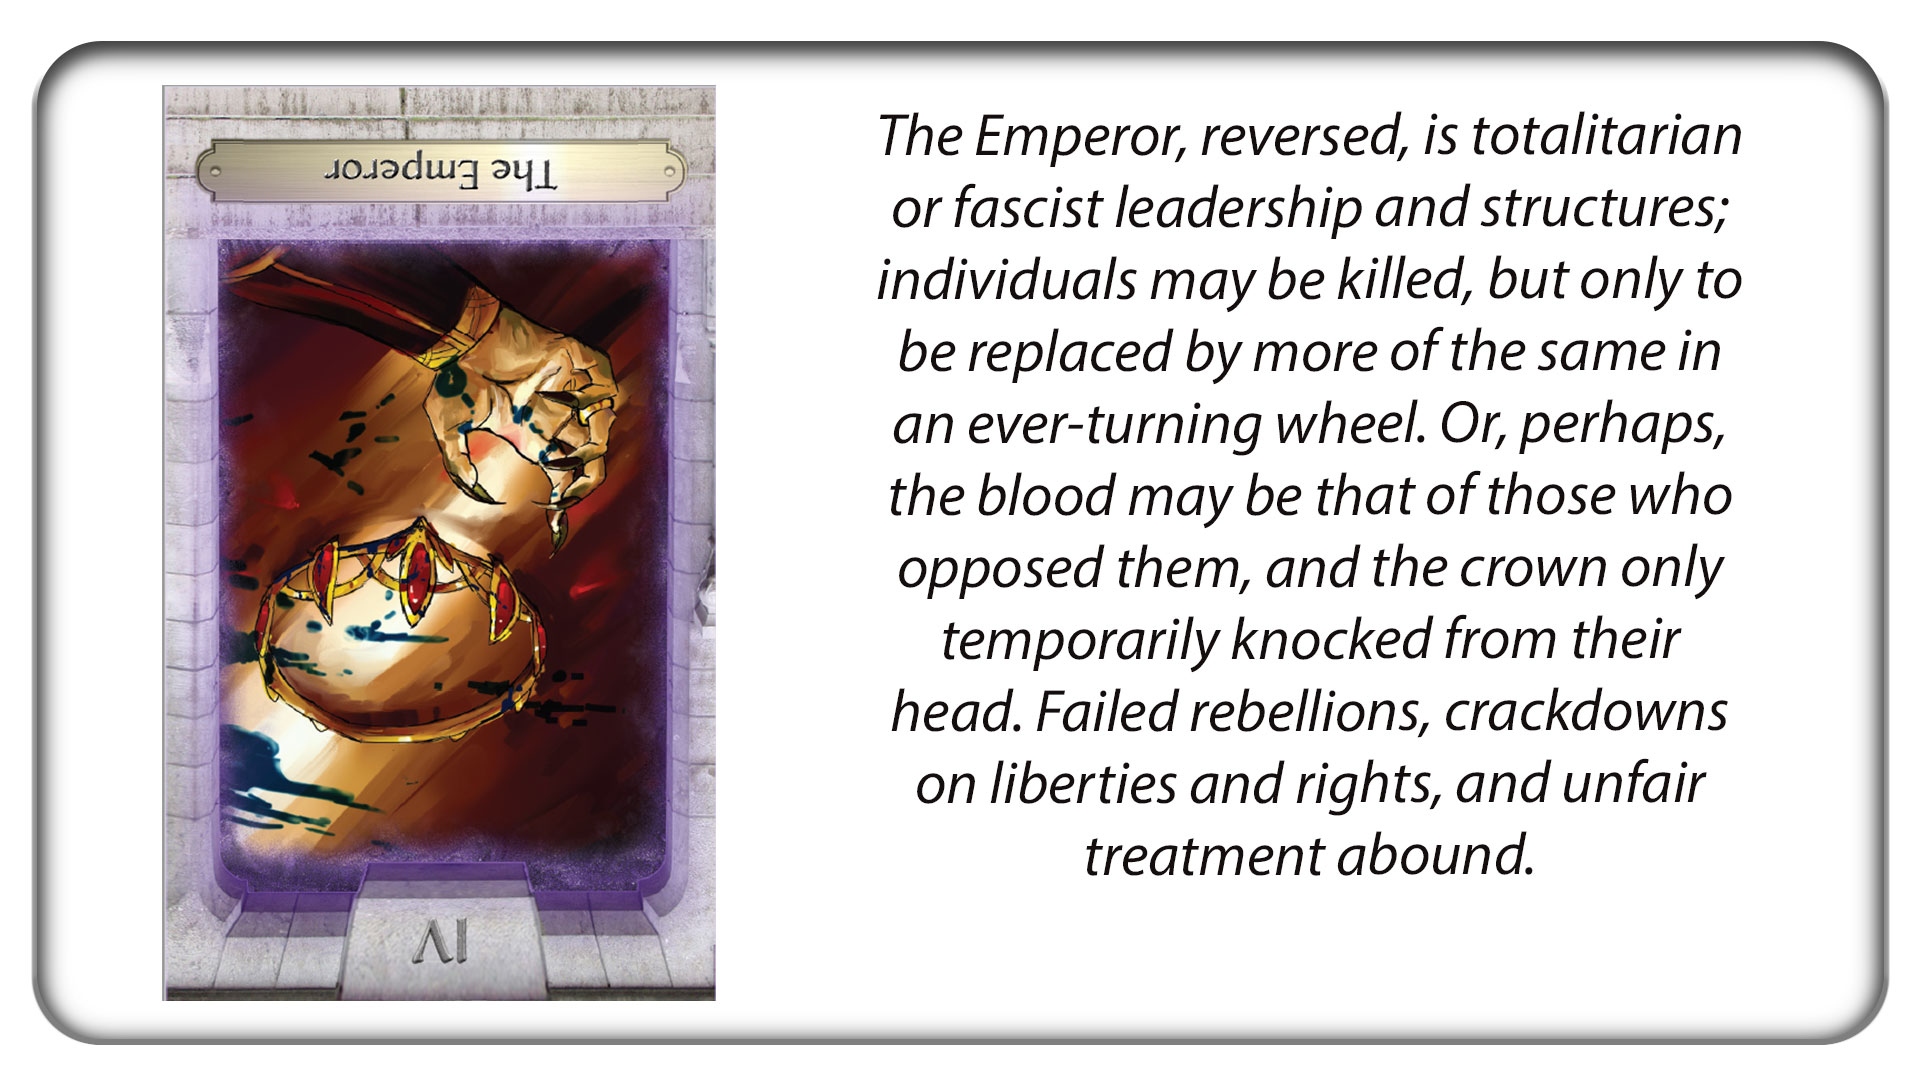 The Emperor, reversed: Totalitarianism and fascism.